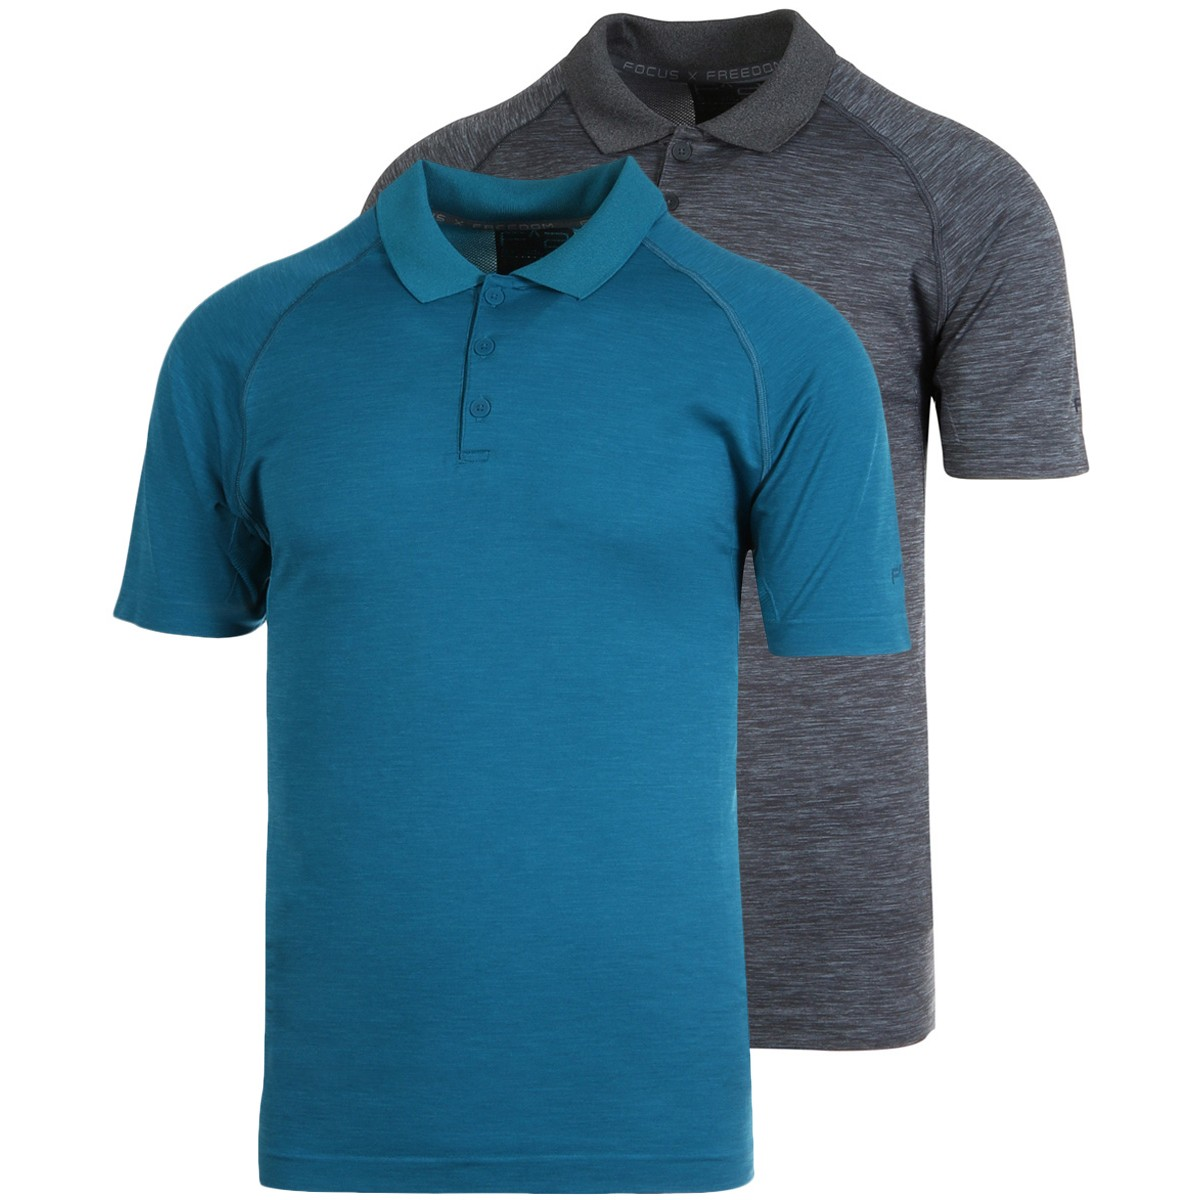 WILSON SEAMLESS POLO